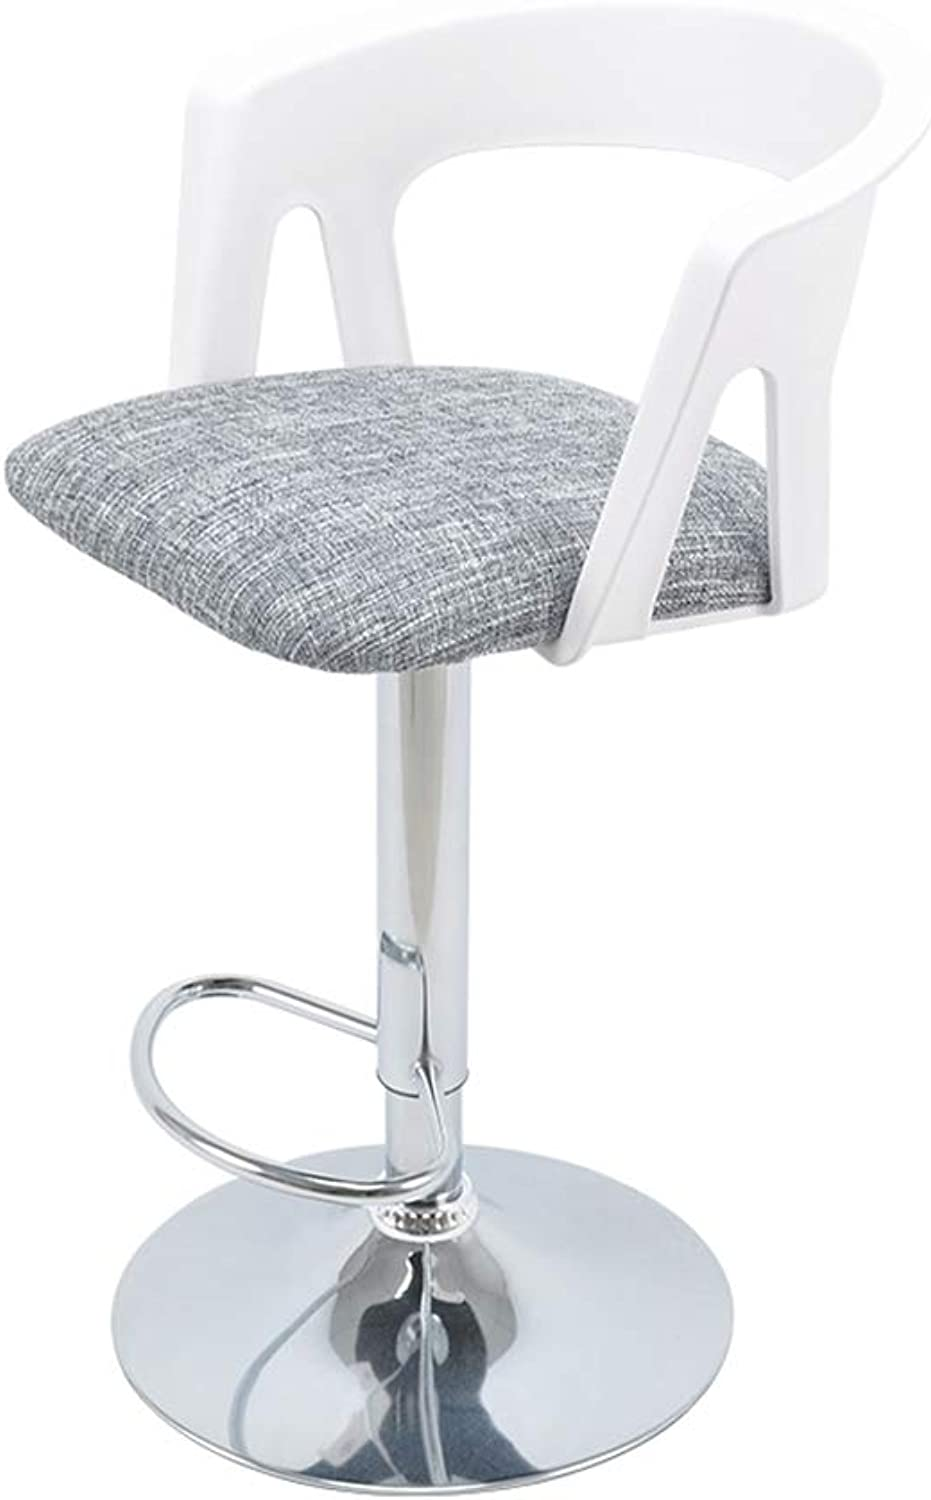 Bar Chair Stool, 360 Degree redating Height Adjustable ABS Plastic Material Chrome Stainless Steel Barstools